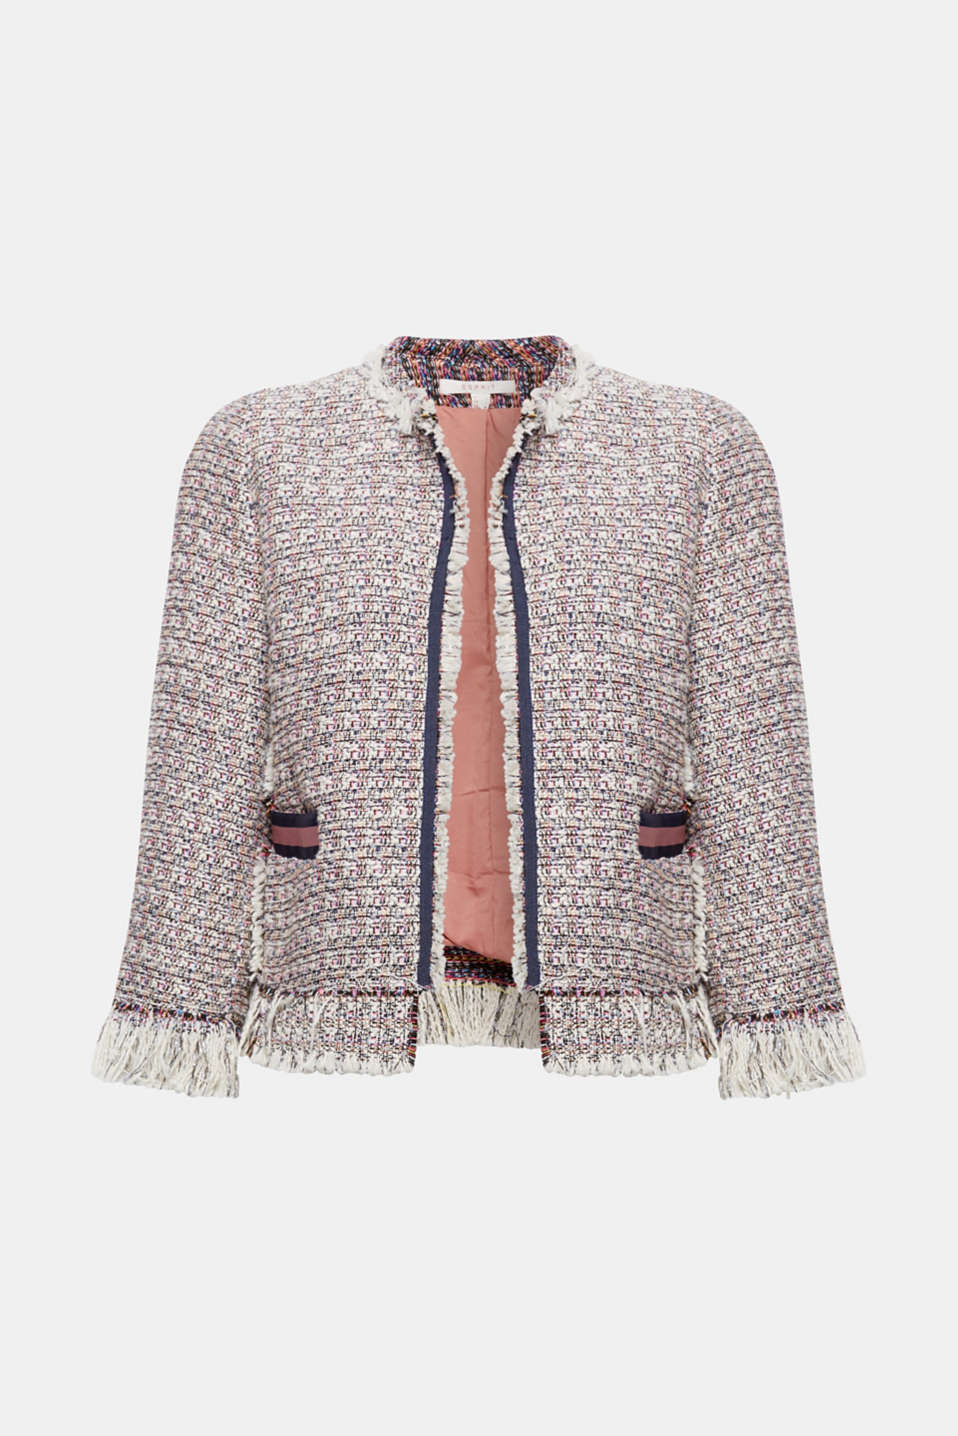 This short, boxy bouclé jacket with a glitter effect and fringing will give your look a feminine, luxurious charm!